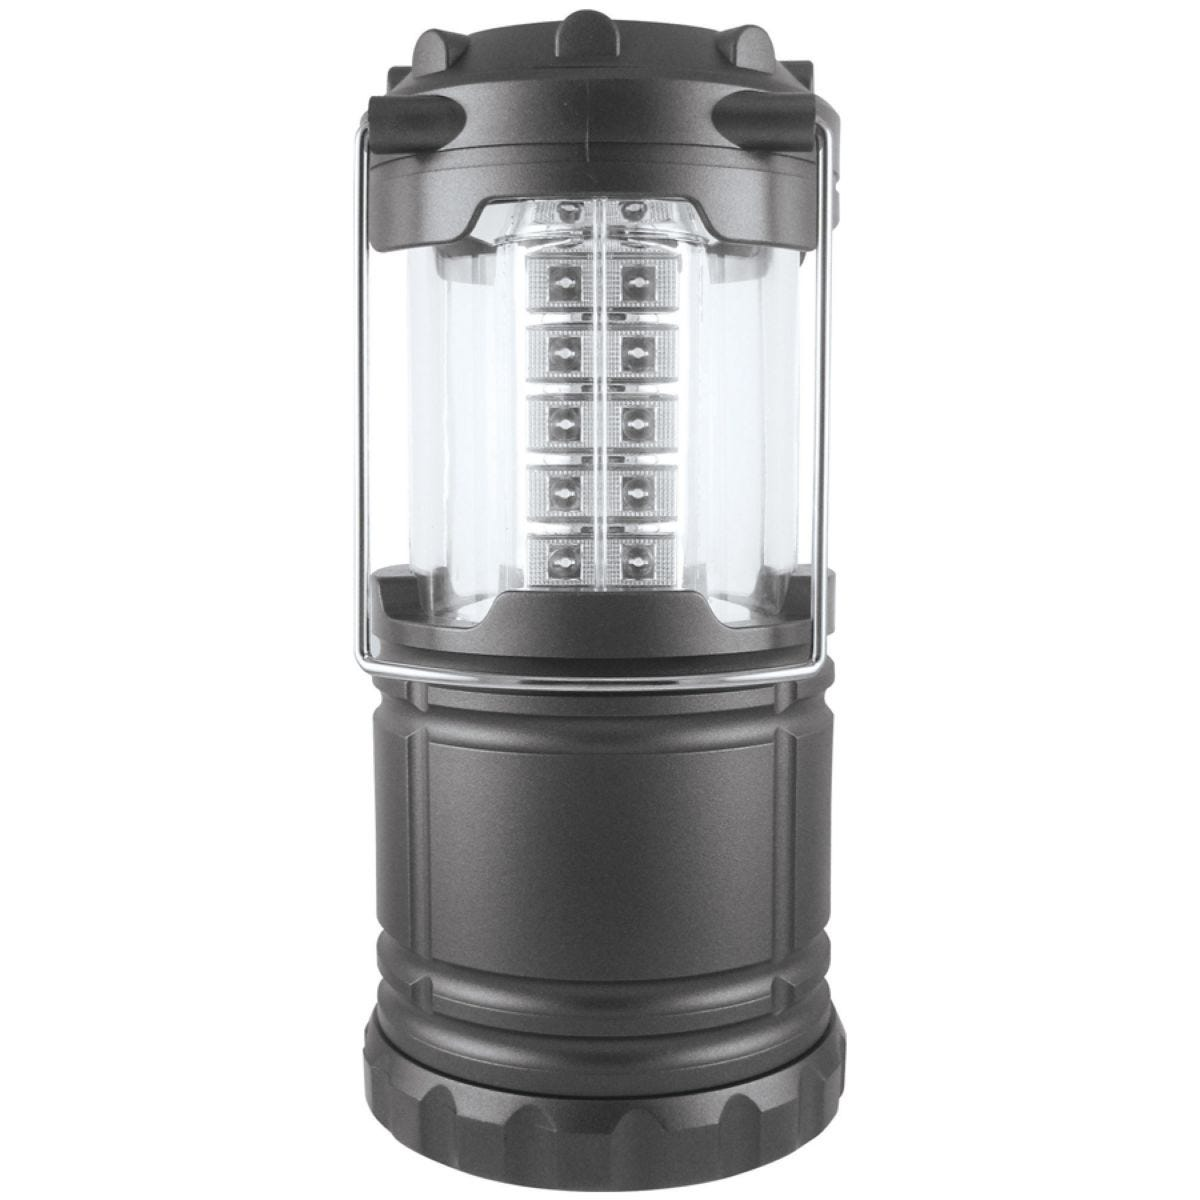 Unicom LED Collapsible Lantern